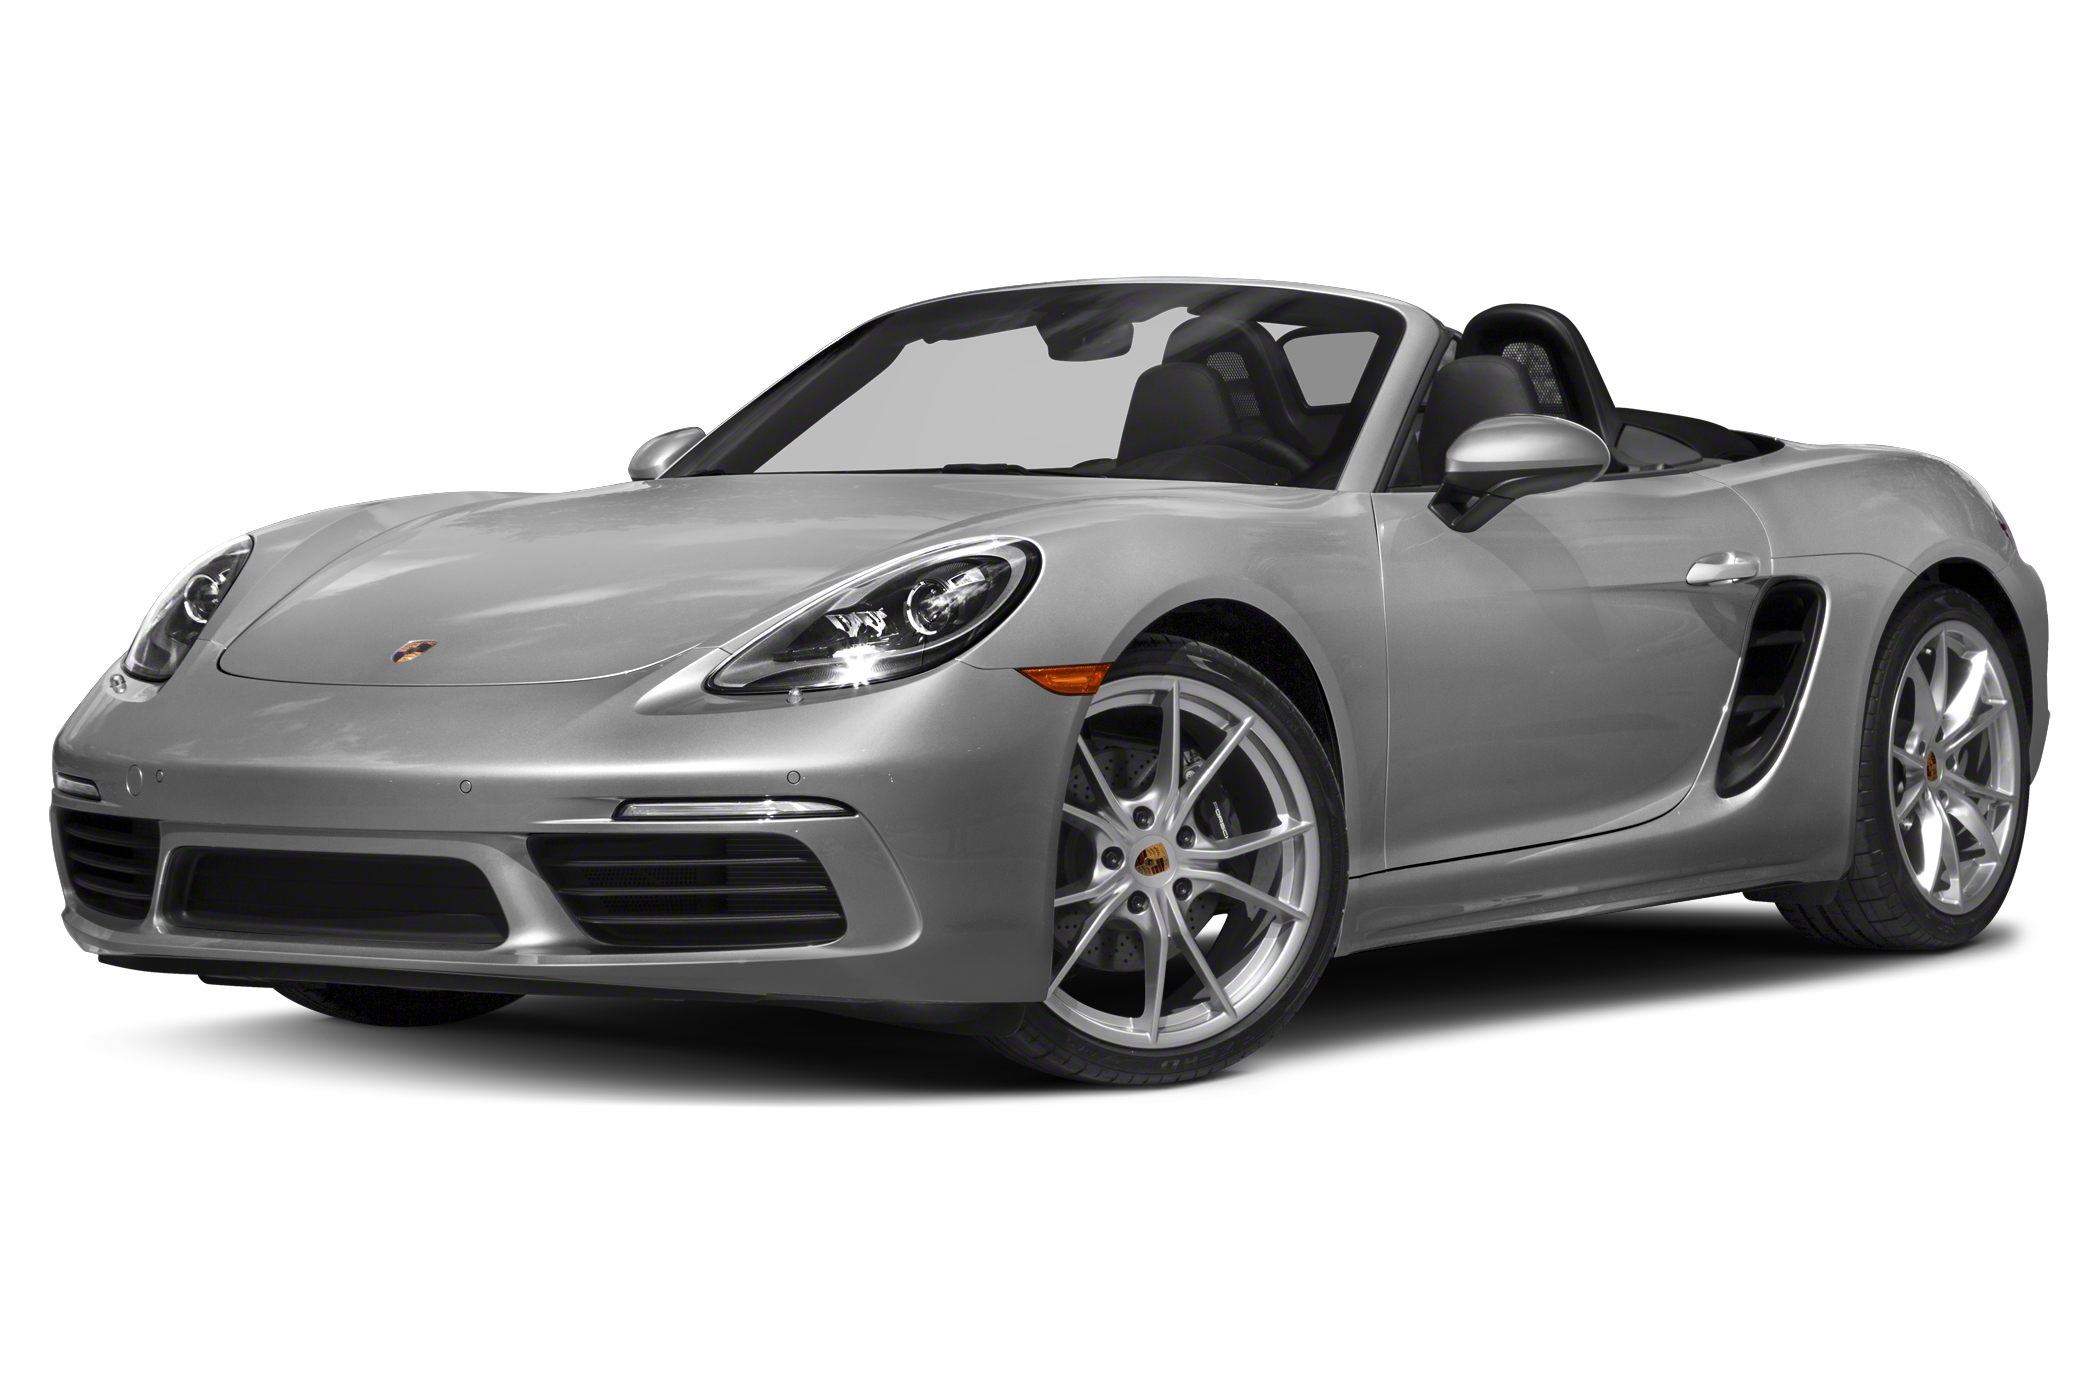 Porsche teases 718 Boxster Spyder: 'A storm is coming'